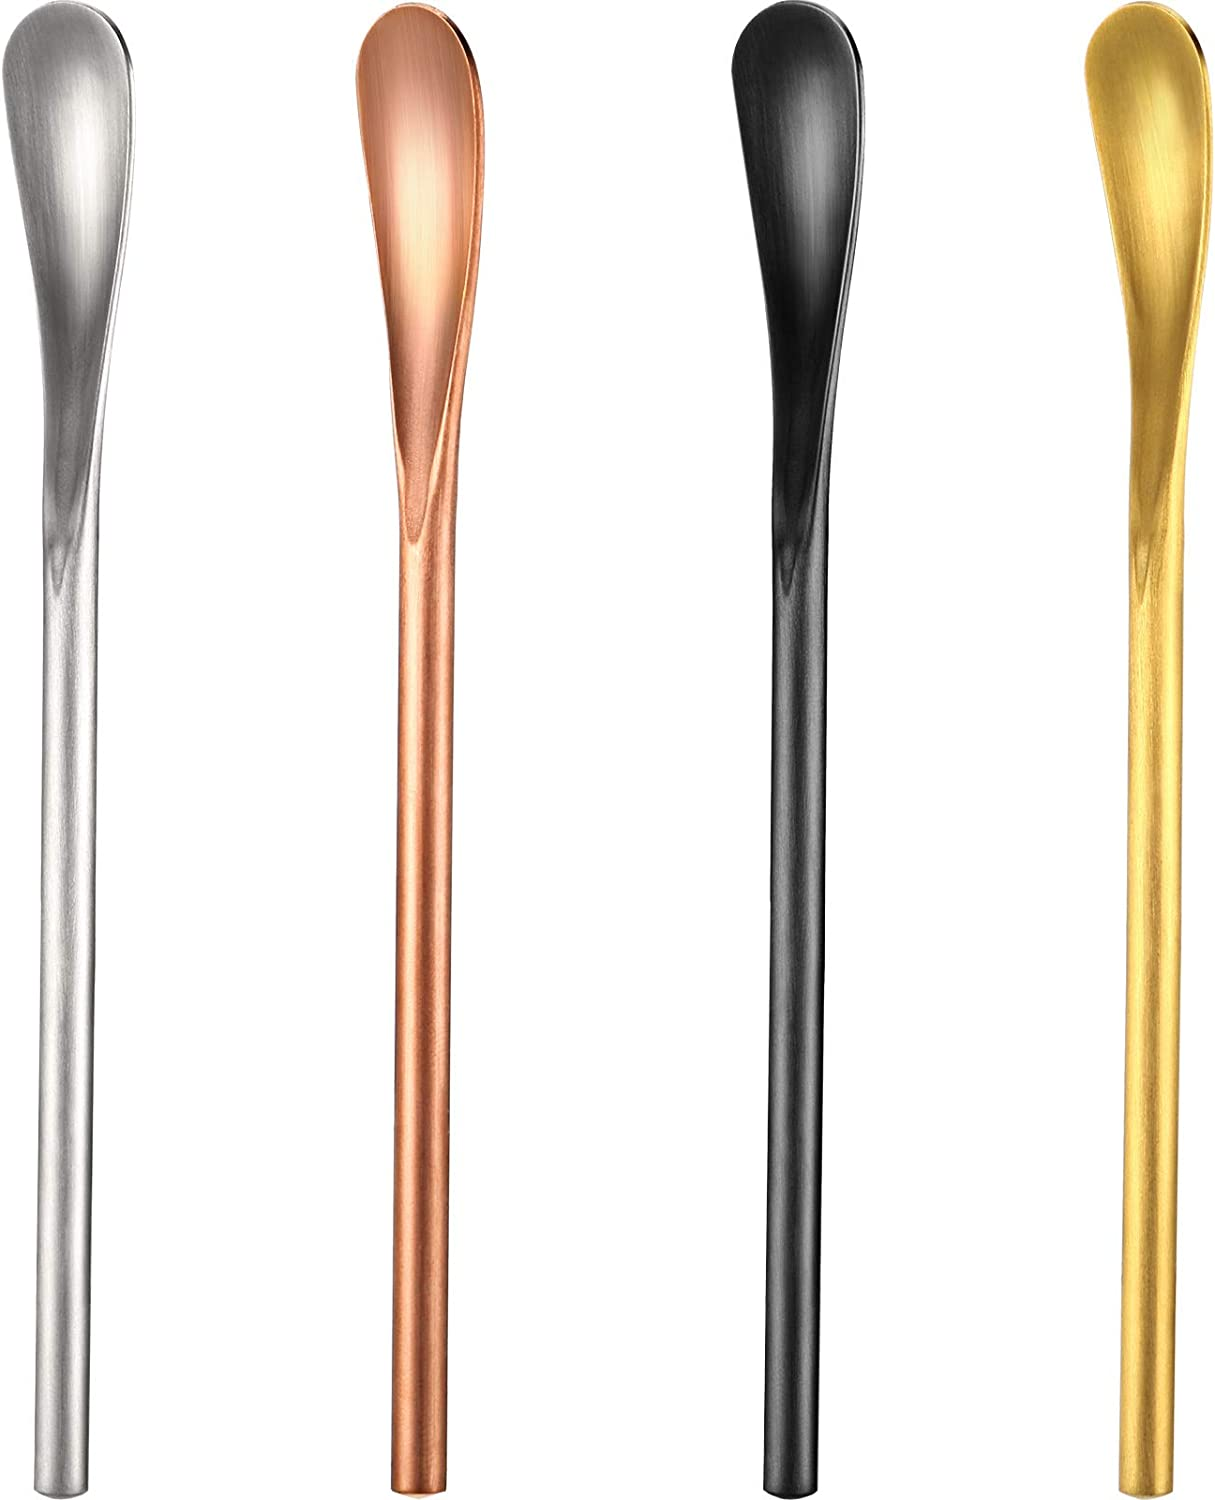 5.12 inch 304 Stainless Steel Coffee Stir Sticks Cocktail Tea Spoons Beverage Stirrer Spoons Drink Stir Spoons with Short Handle for Bar Home Office (4, Silver, Black, Gold, Rose Gold)